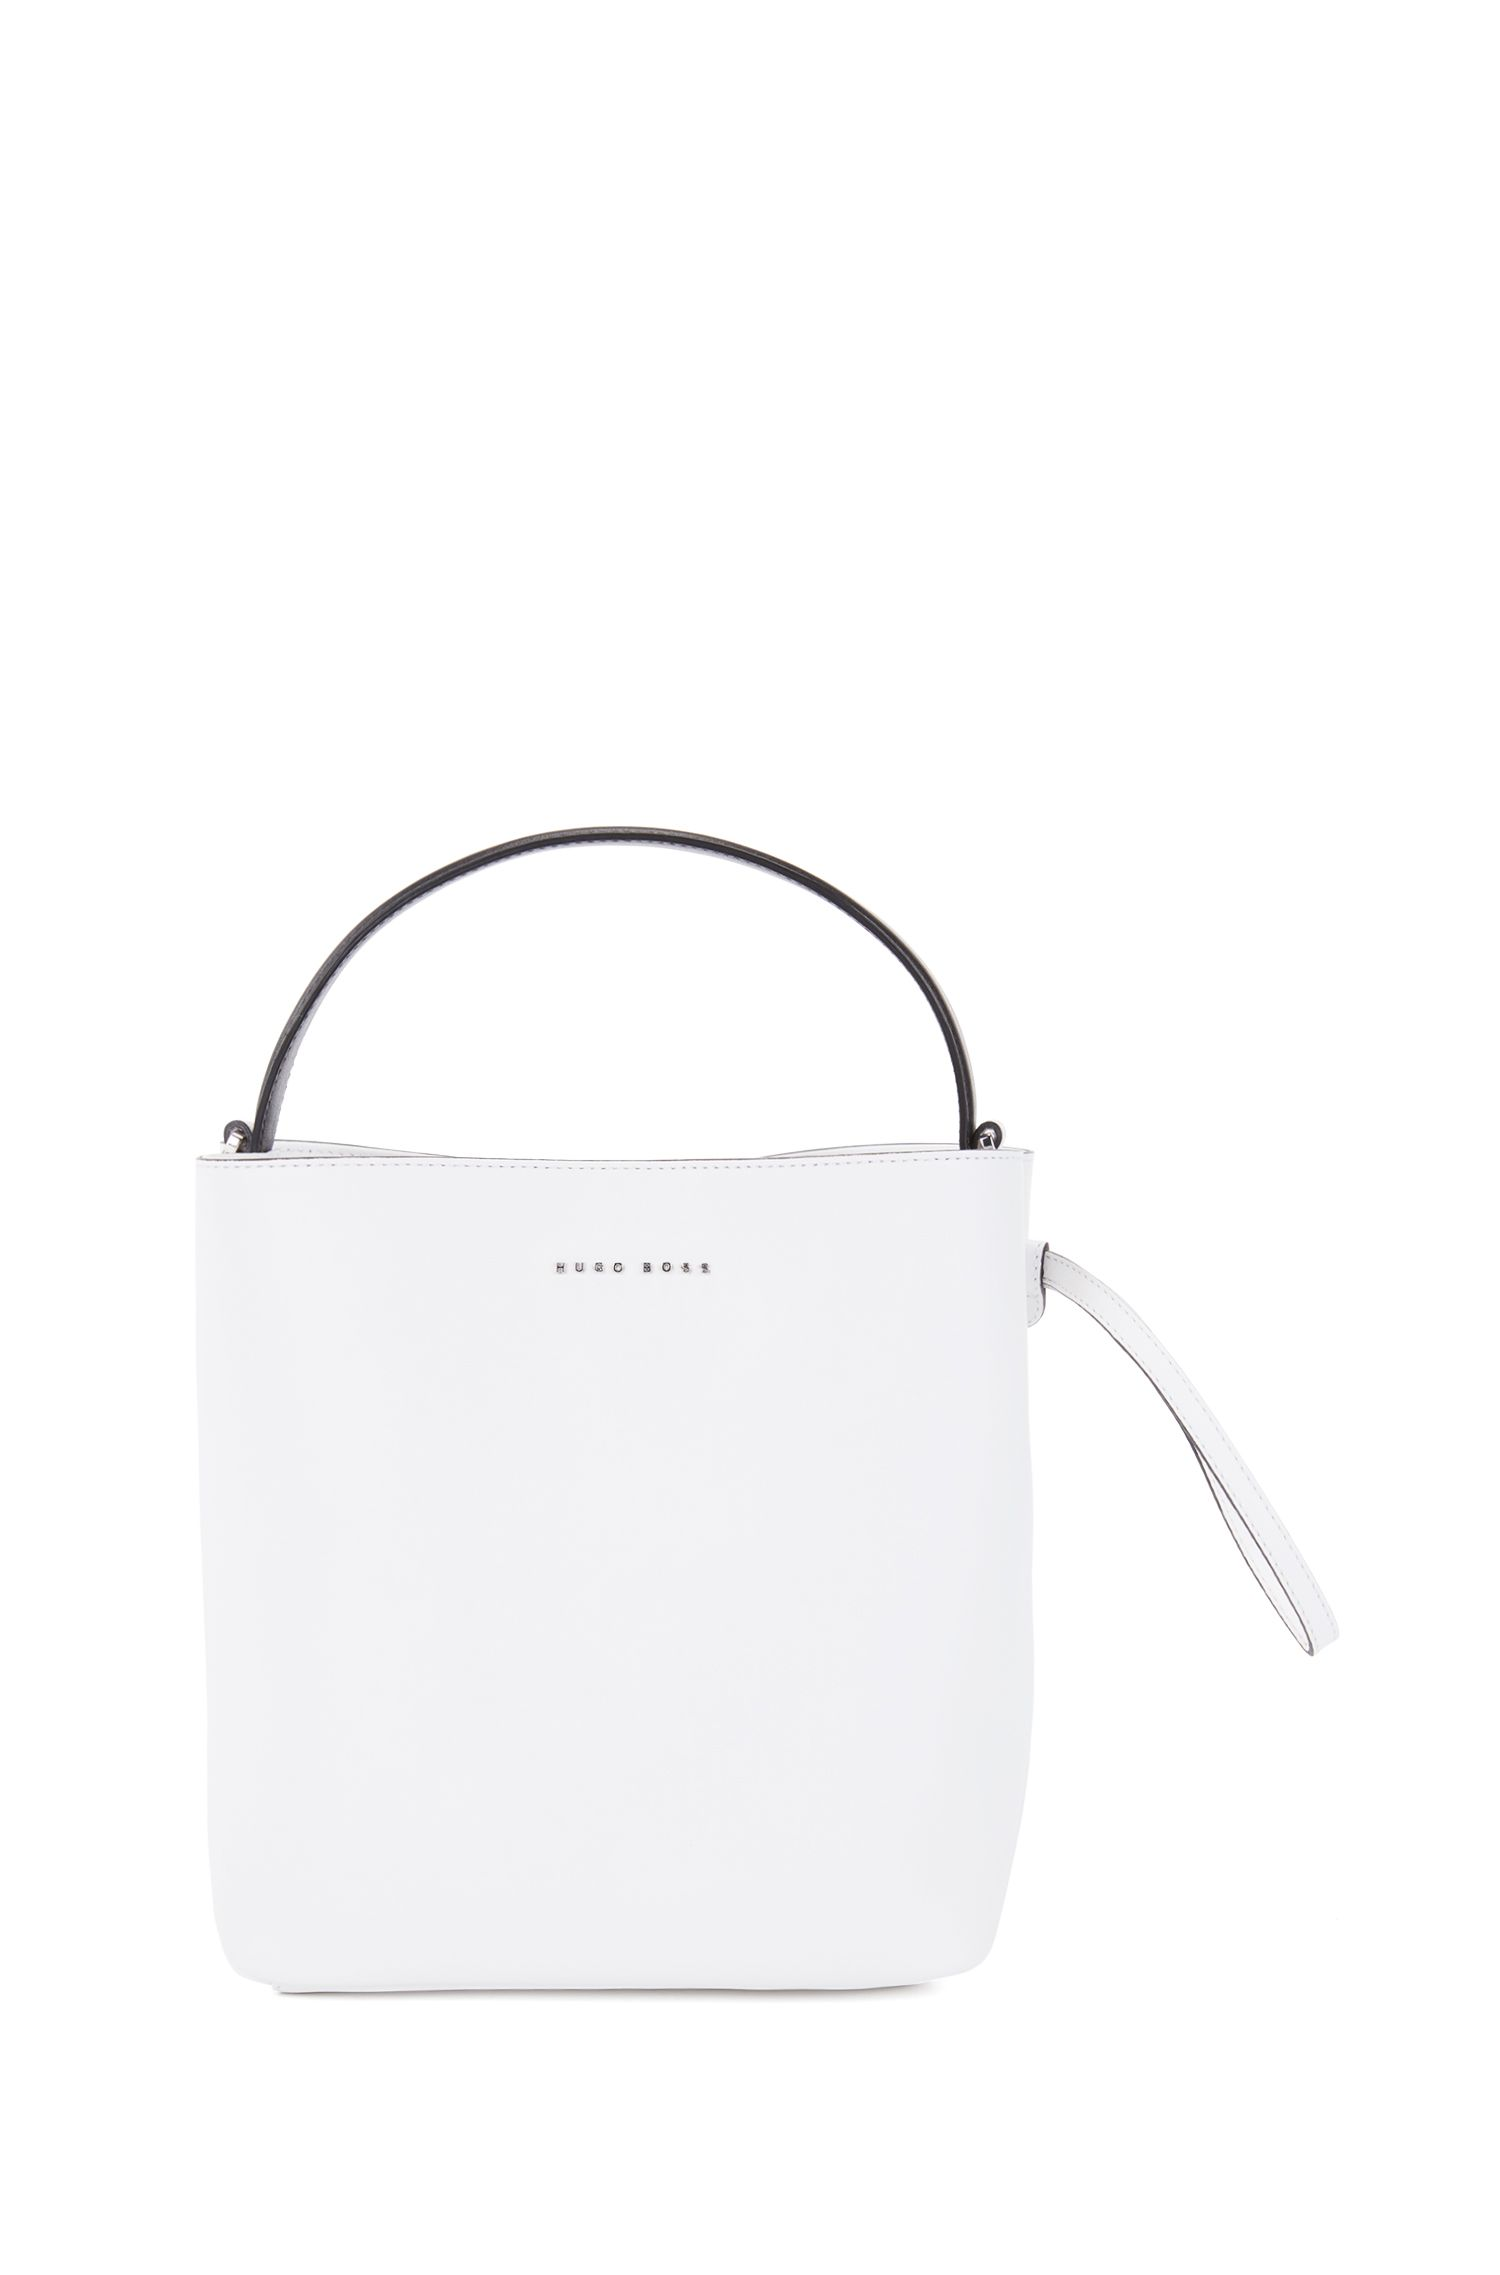 Sac seau de la collection Gallery en cuir nappa italien monochrome, Blanc